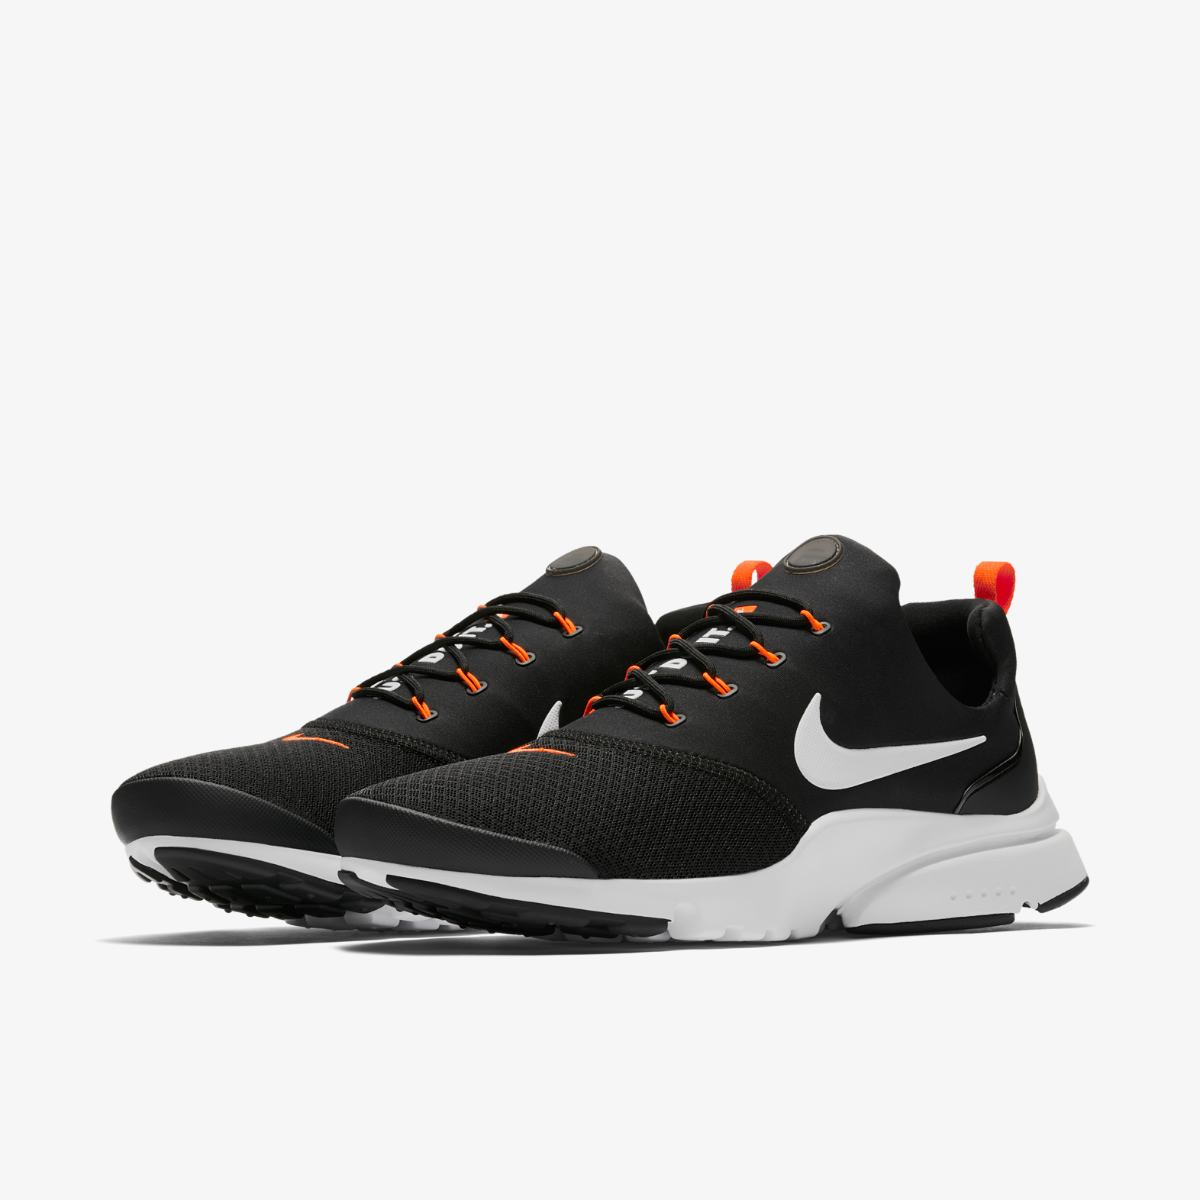 National Day Of Reconciliation ⁓ The Fastest Nike Presto Fly